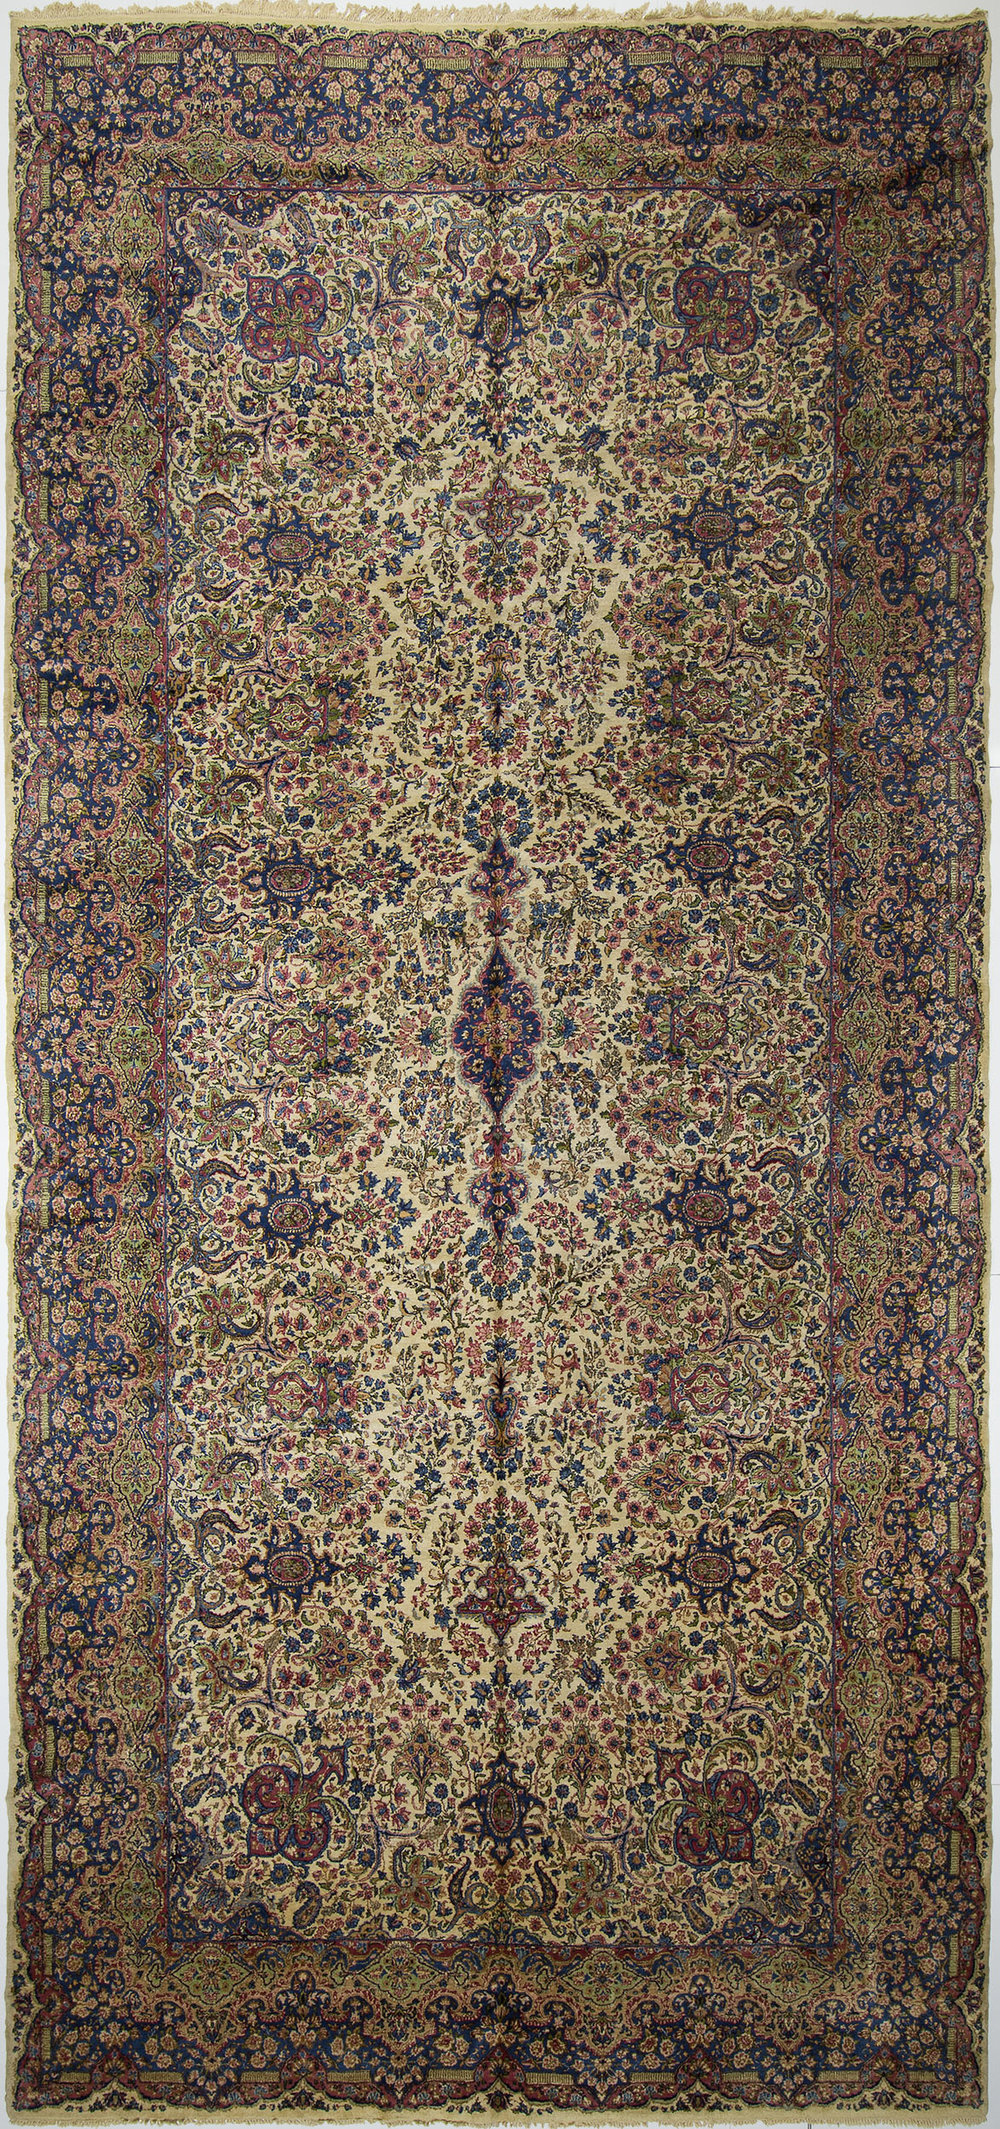 "Kerman Carpet 20' 8"" x 9' 8"""